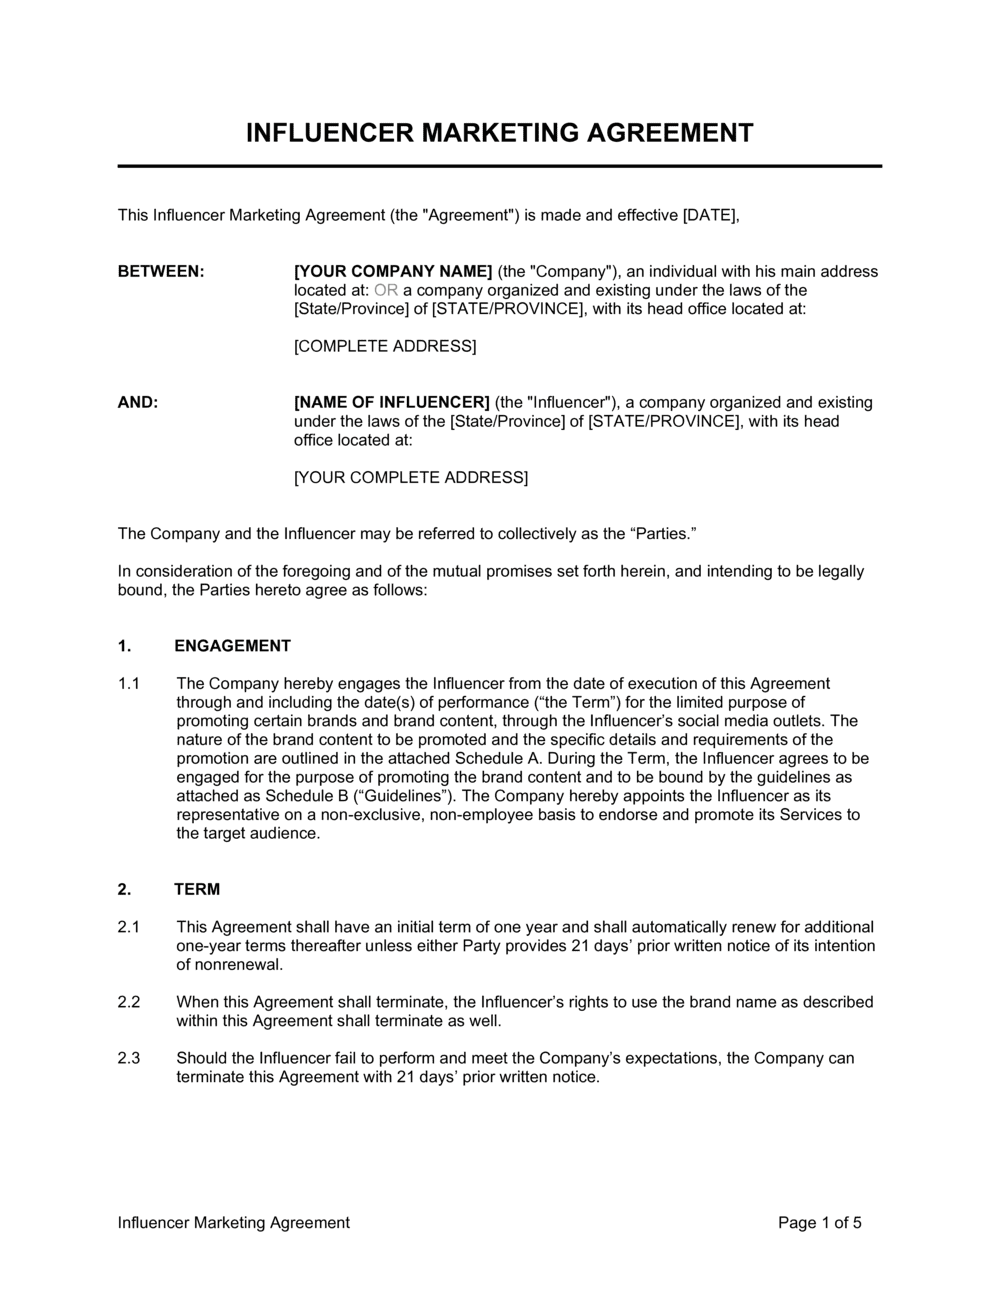 Business-in-a-Box's Influencer Marketing Agreement Template